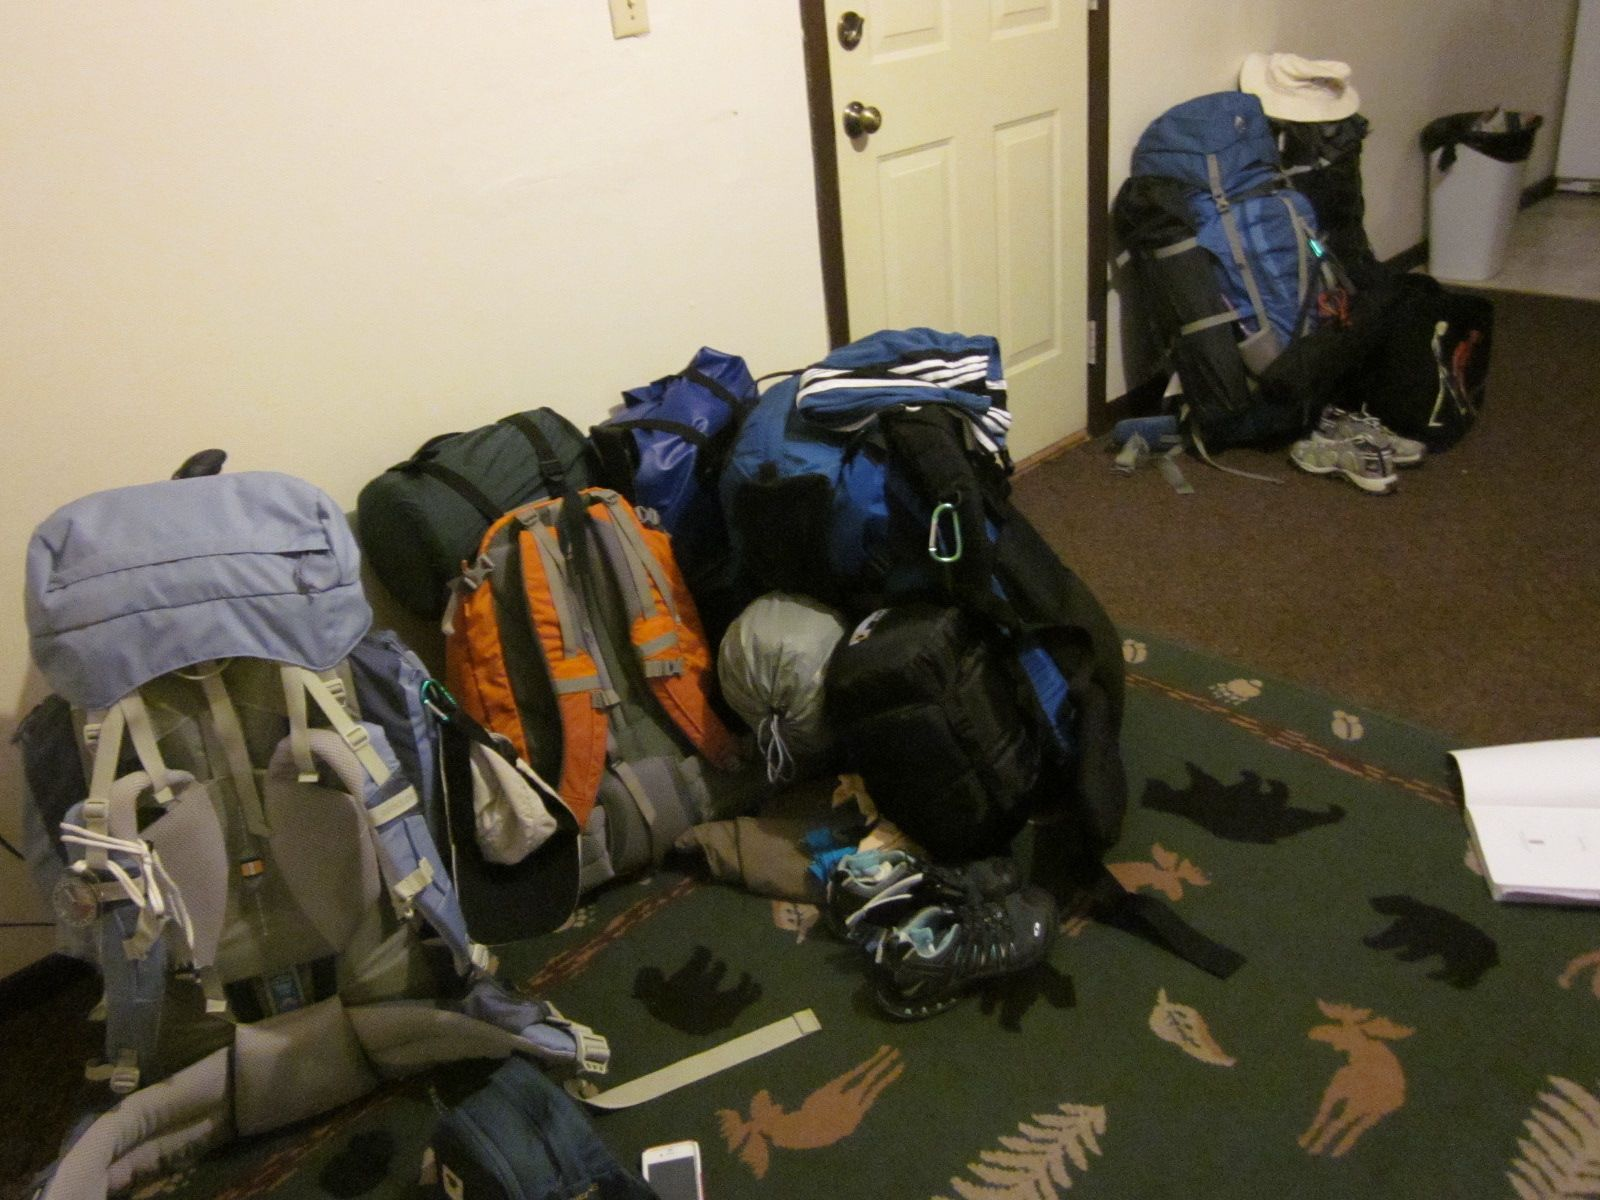 04-What we packed